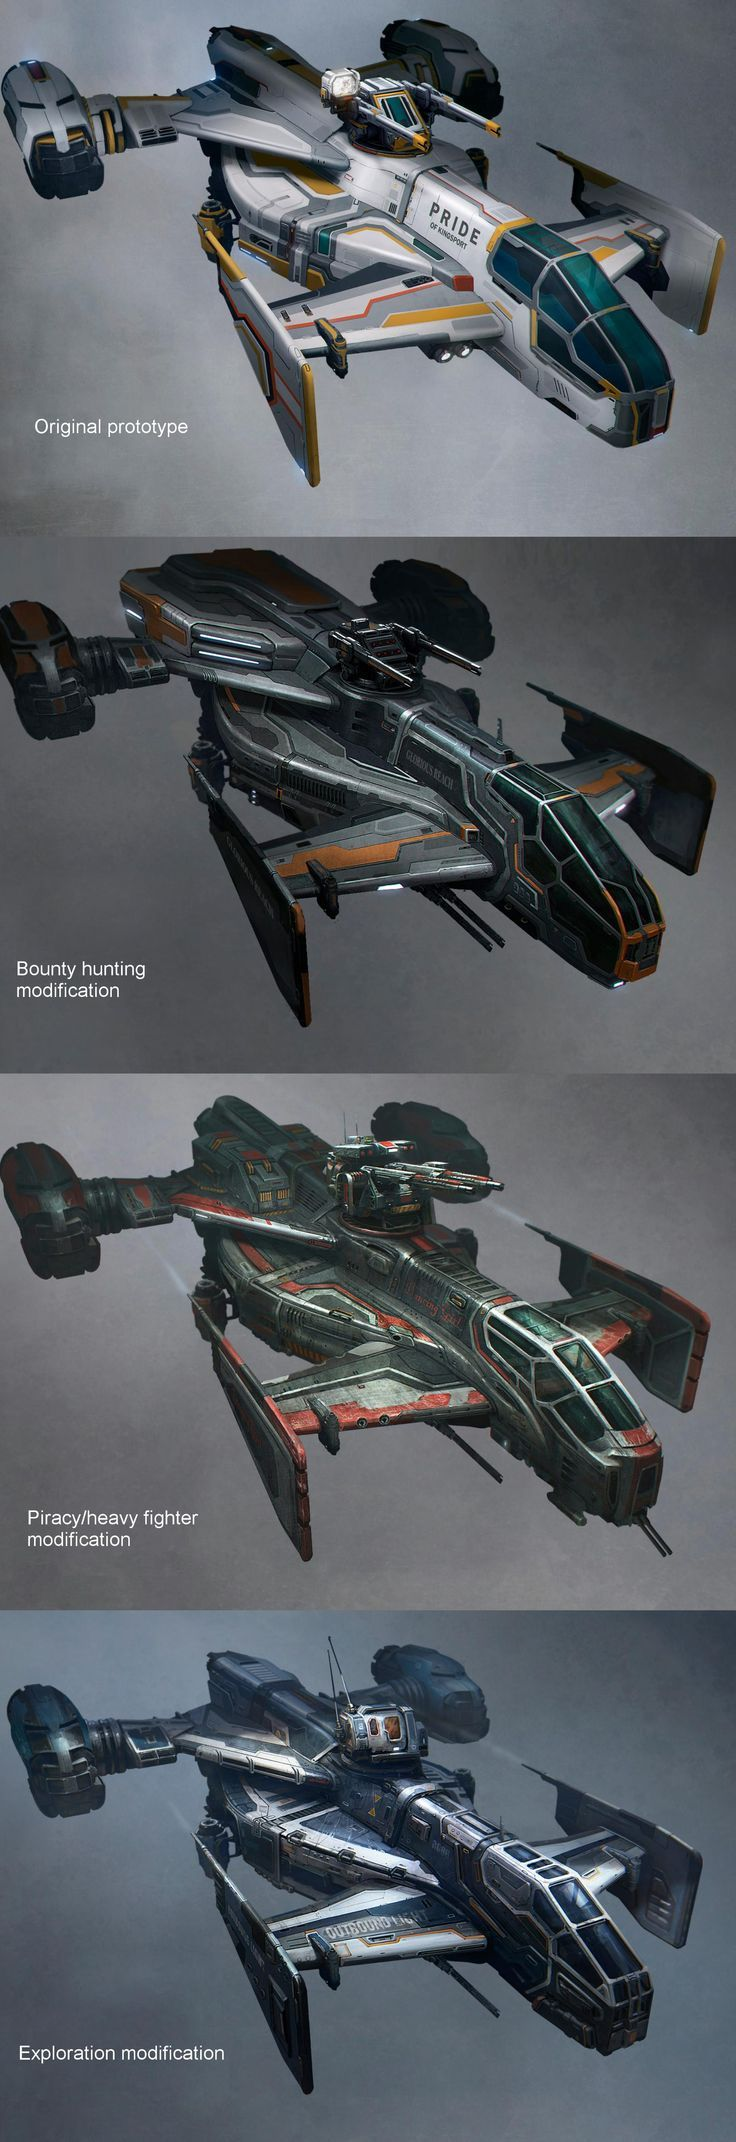 Star Citizen Cutlass Variants | Sci-Fi futuristic vehicles spaceship spacecraft: